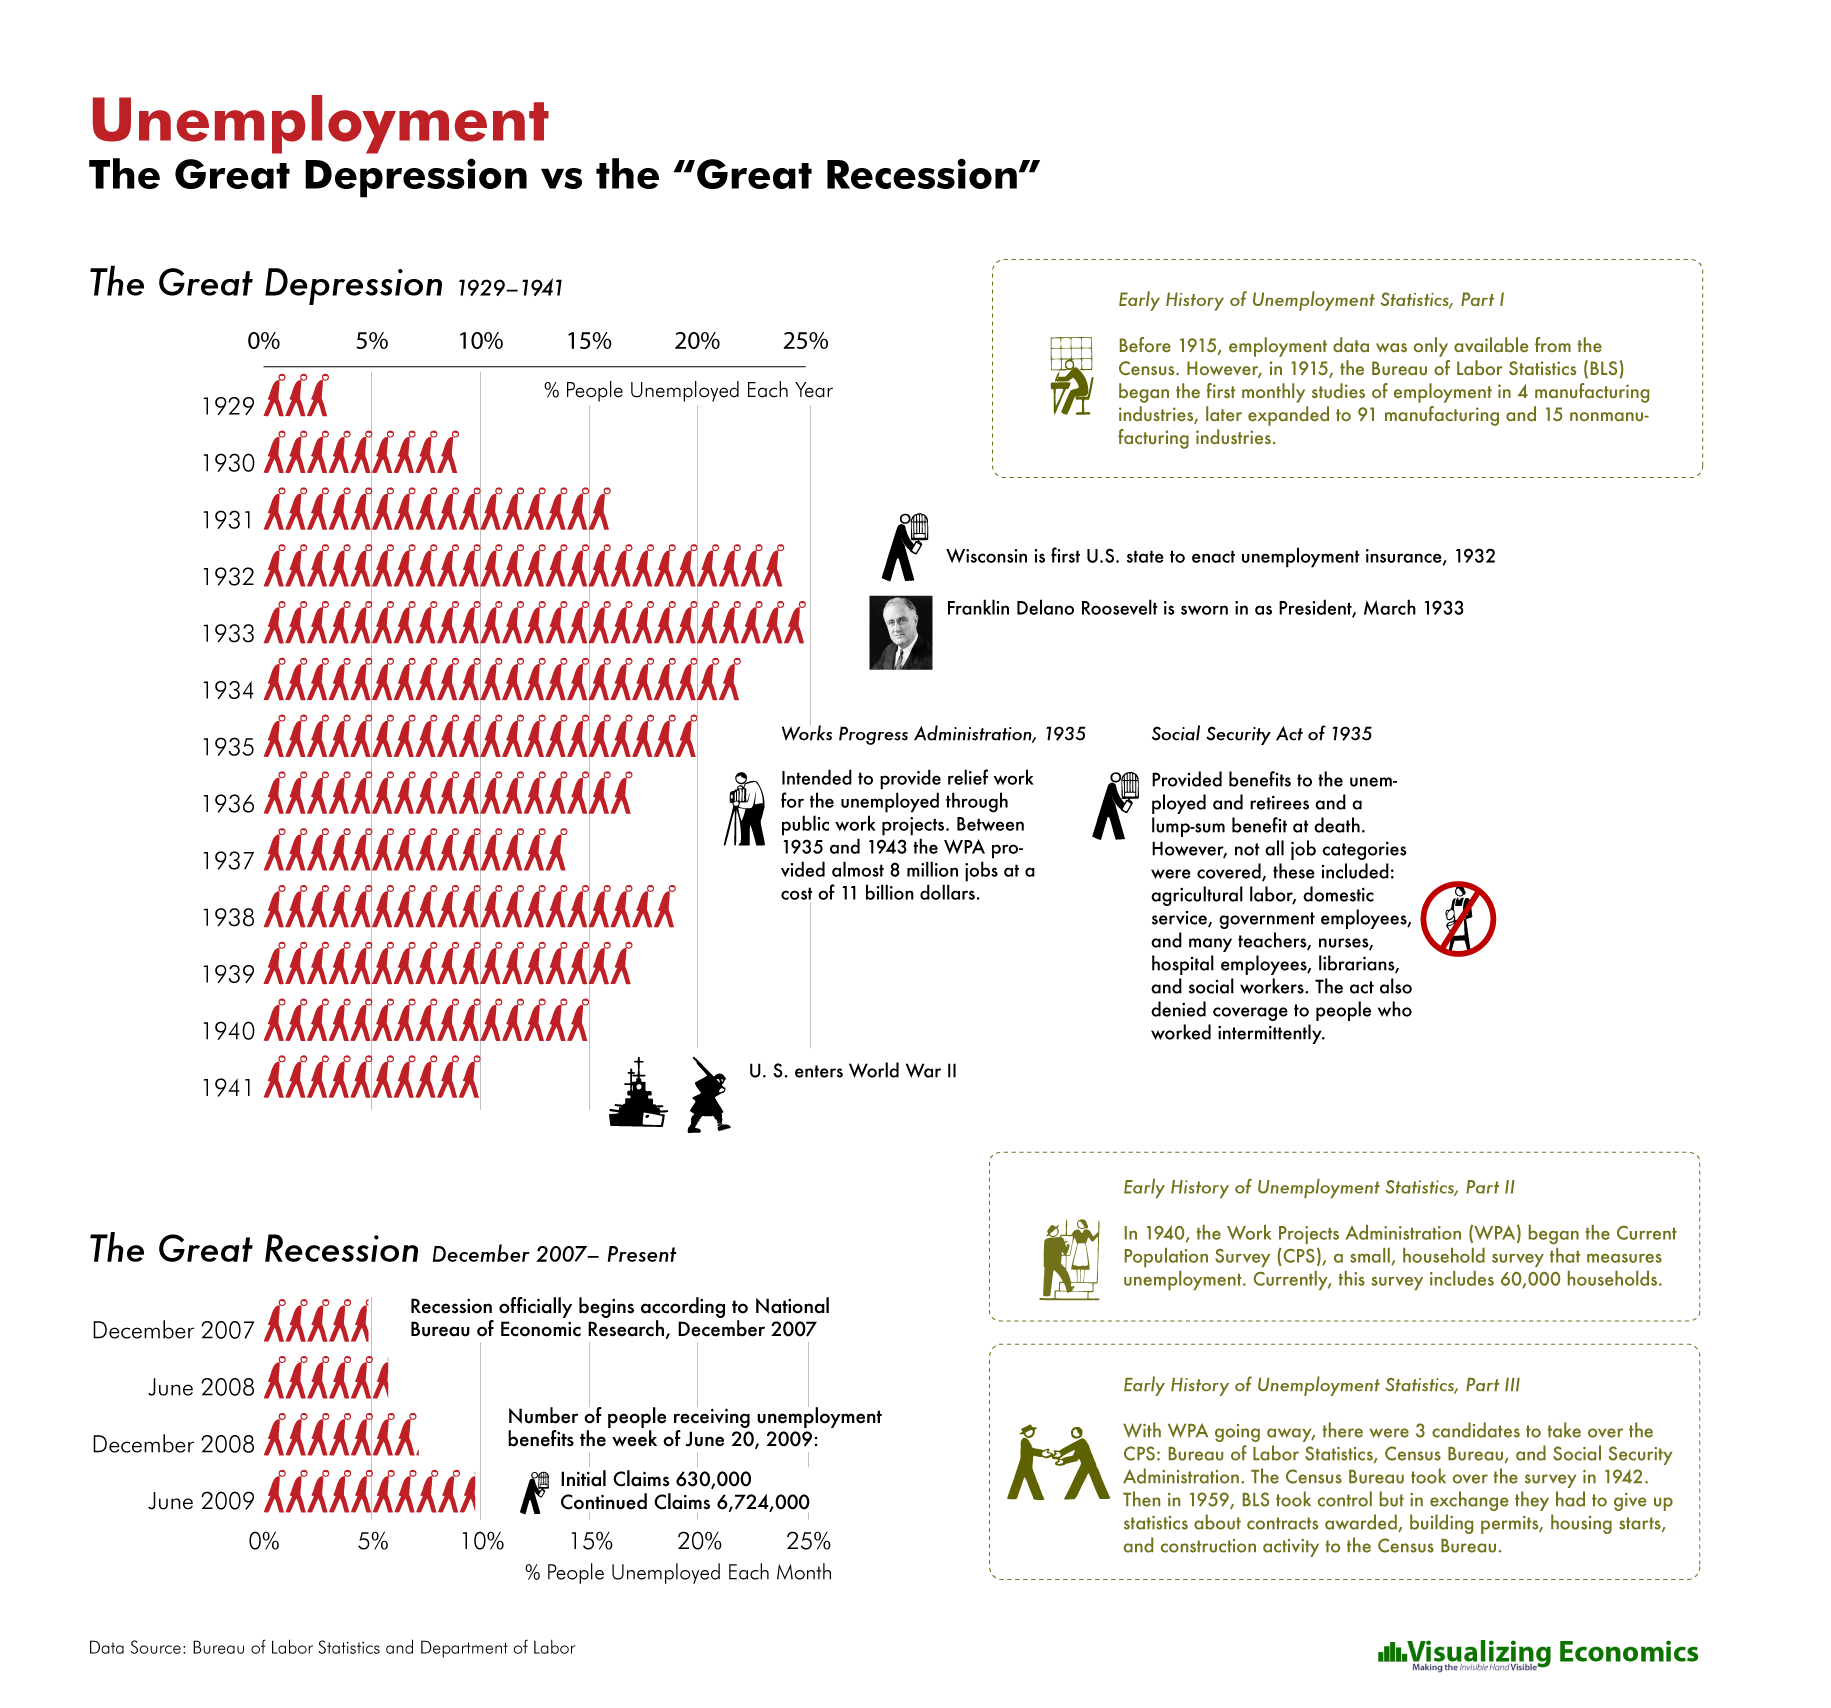 unemployment great depression vs great recession visualizing unemployment1930s